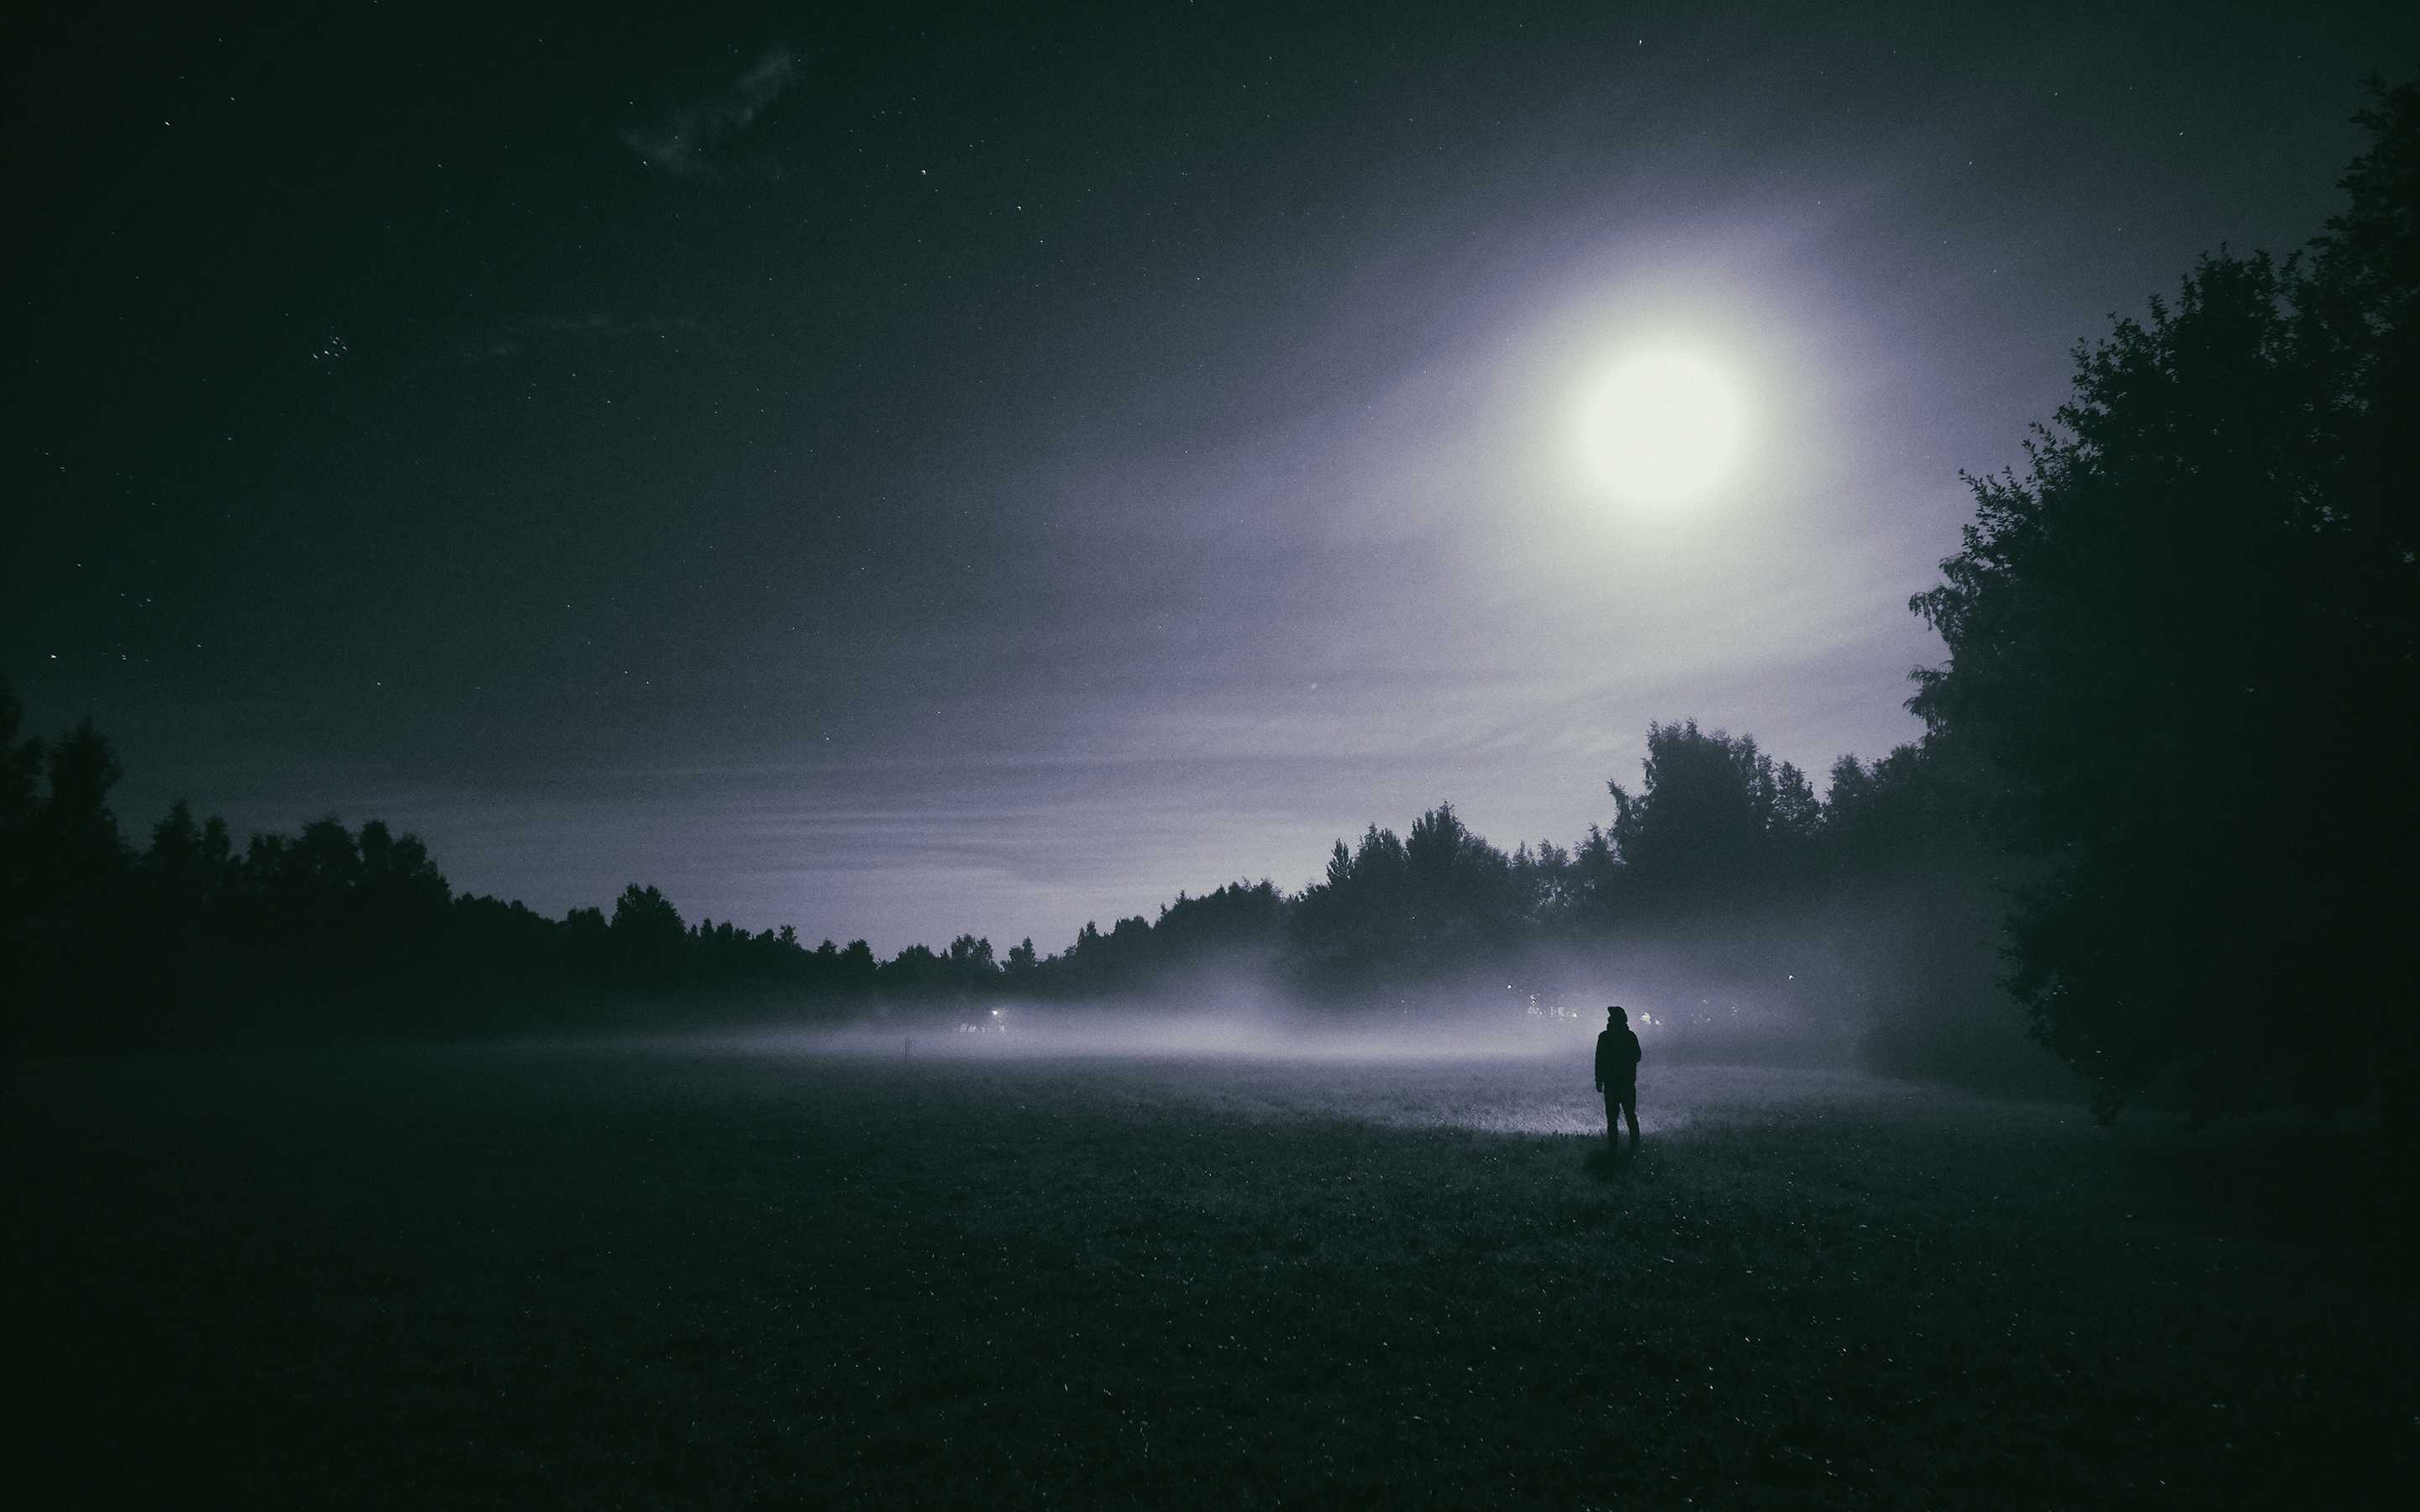 Foggy night Moon